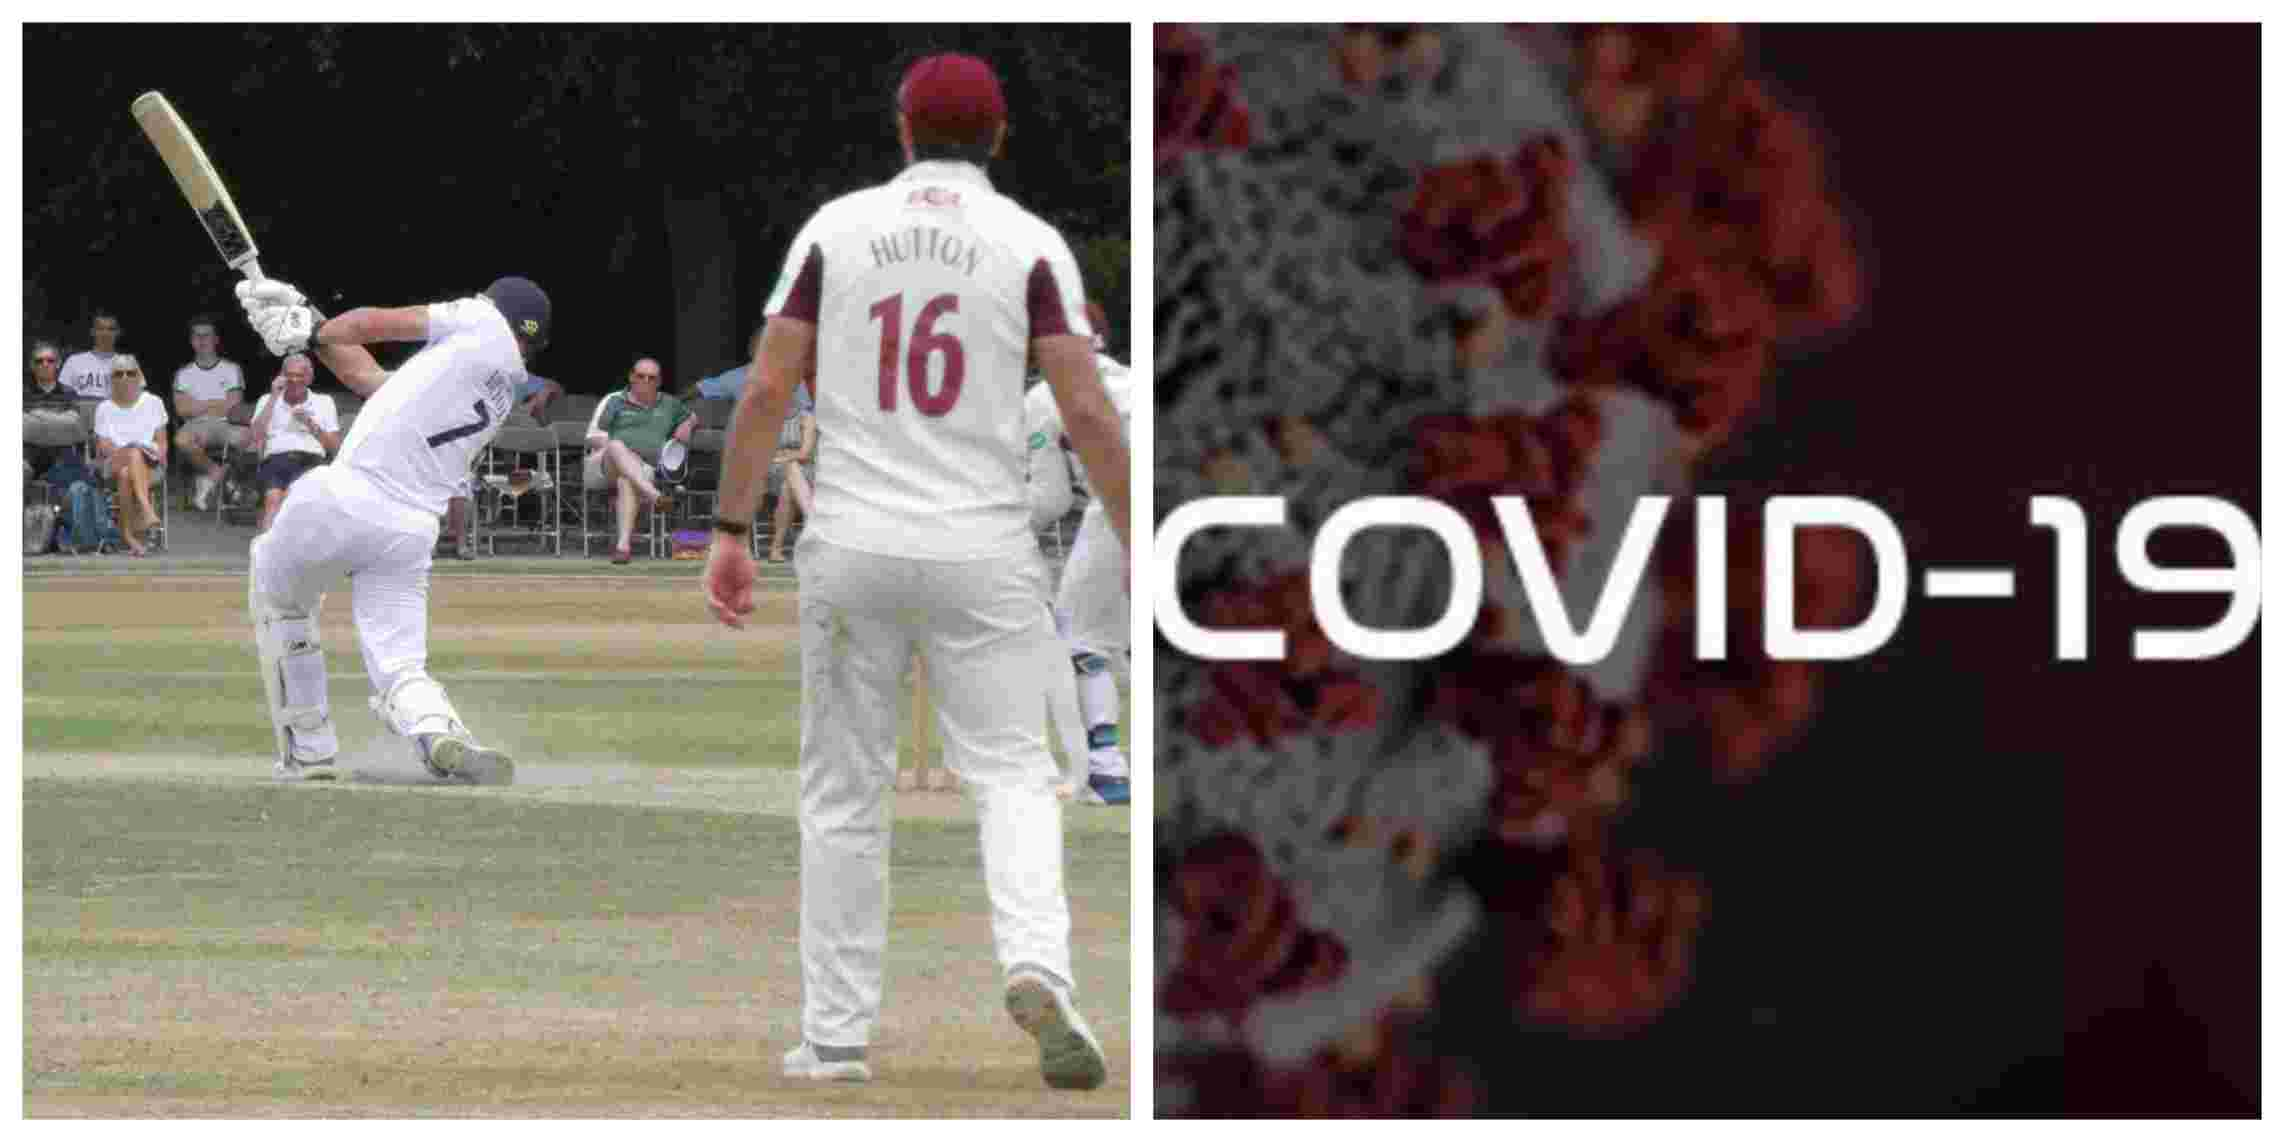 Coronavirus effect: Preparations underway to change the history of cricket